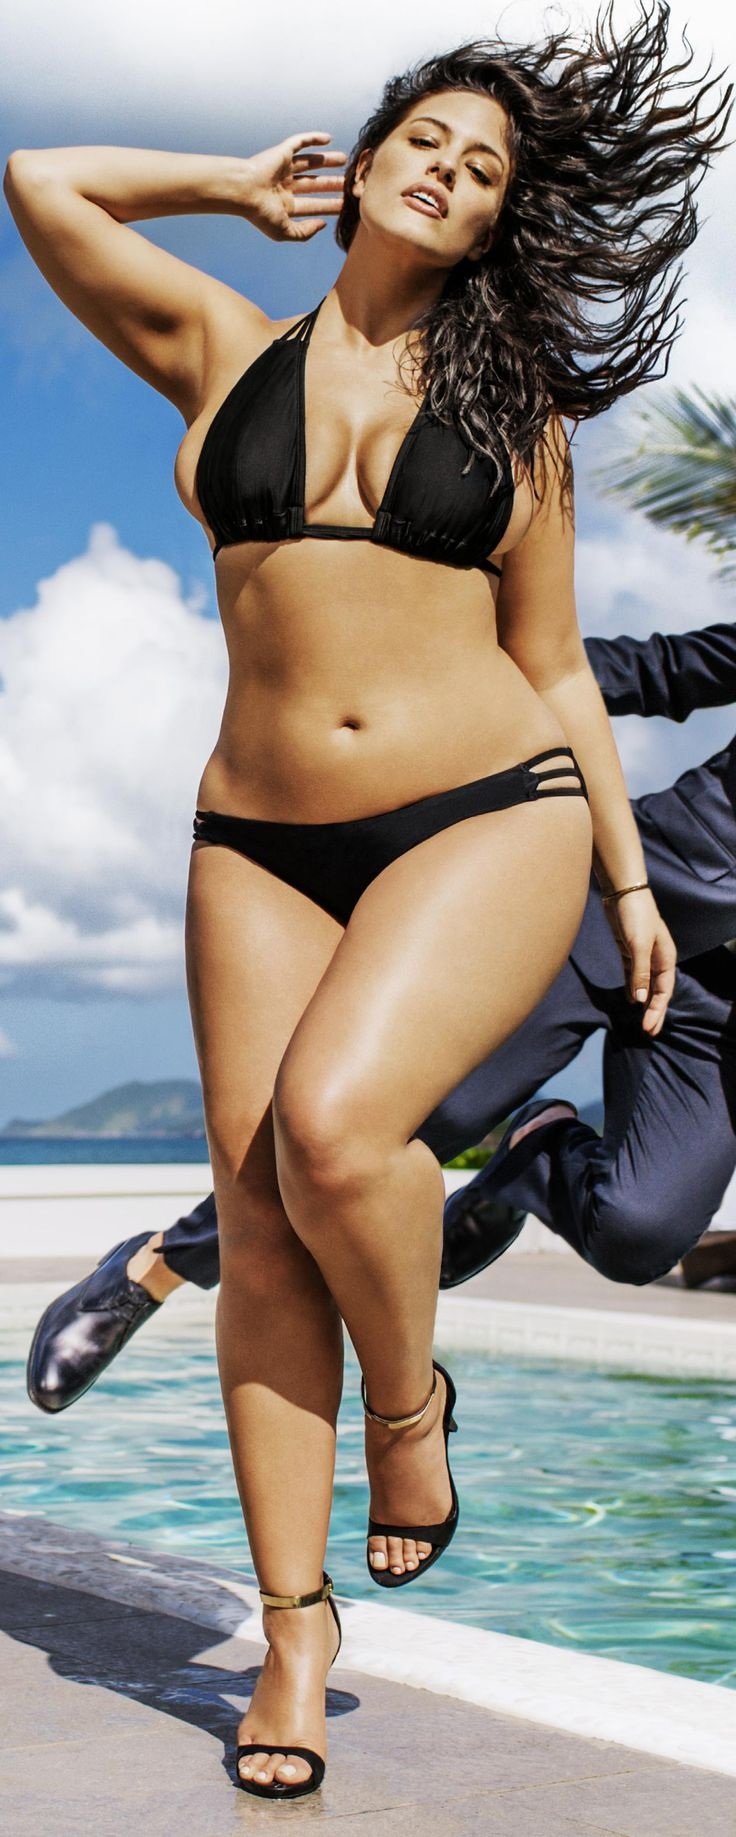 Model Ashley Graham (size 16) is Voluptuousness Personified | Sports Illustrated Swimsuit Issue Features Its First-Ever Plus-Size Model!